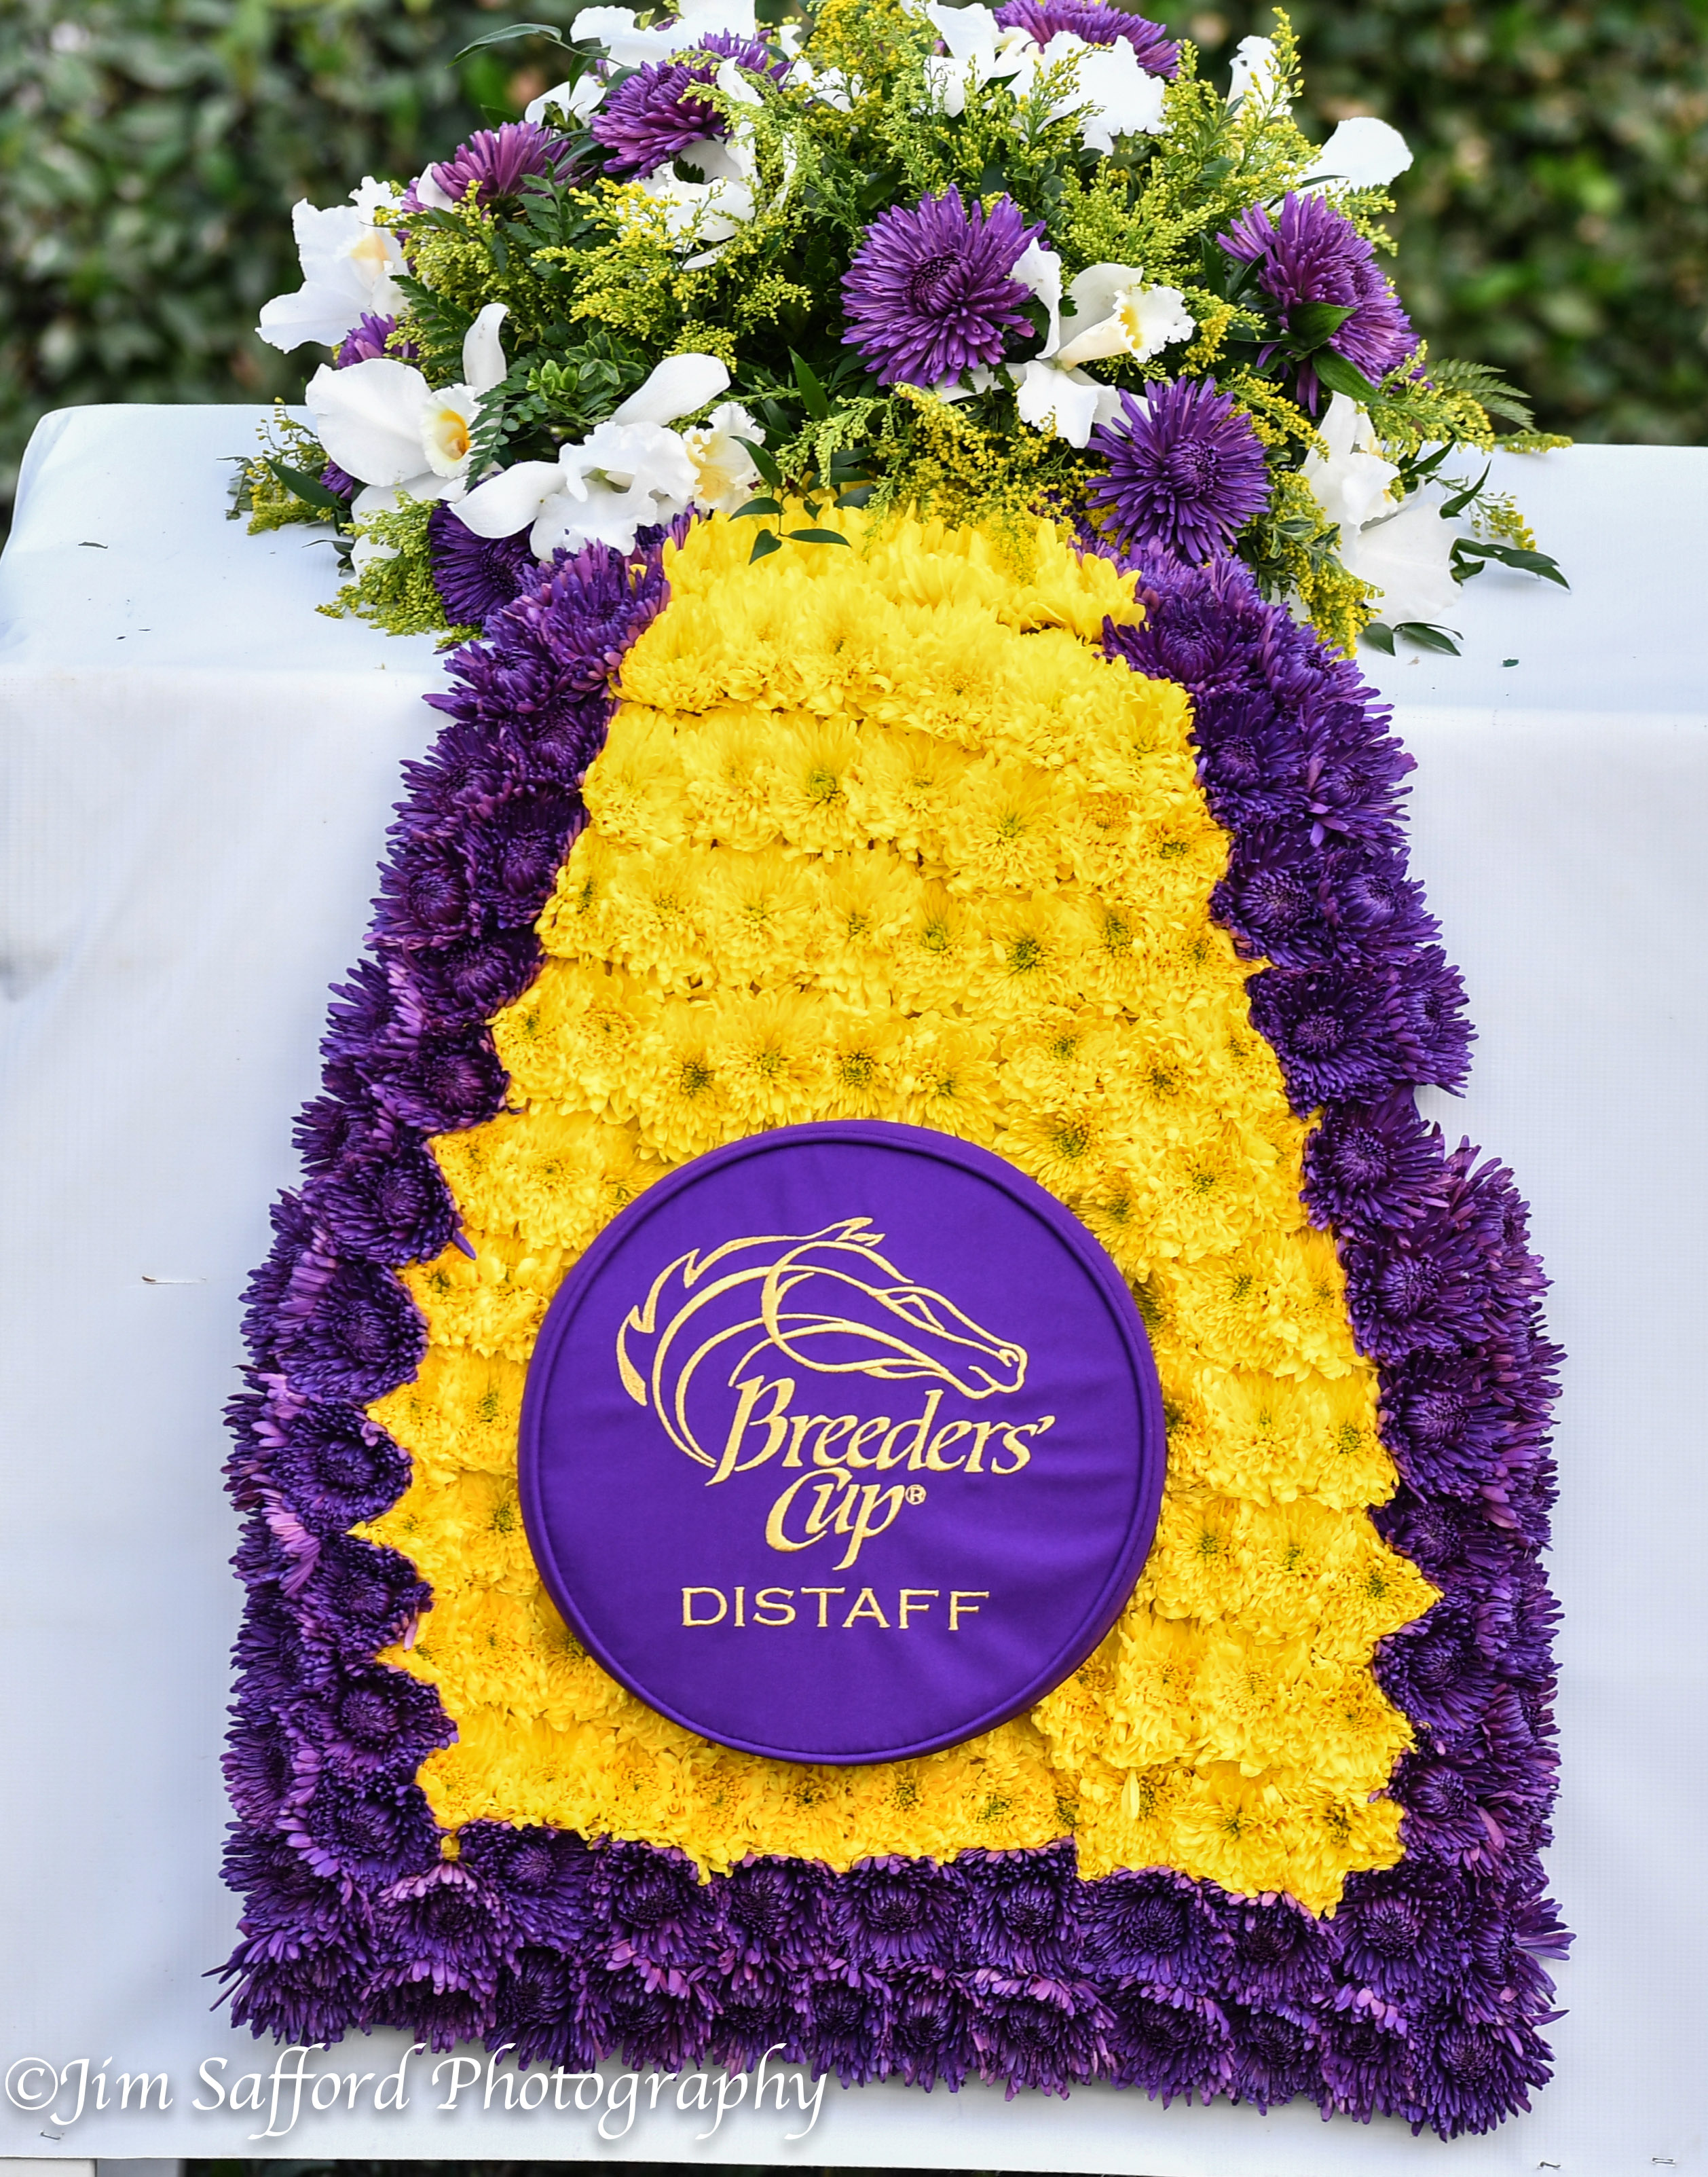 2019 Breeders Cup Post Times And Wagering Menu Lady And